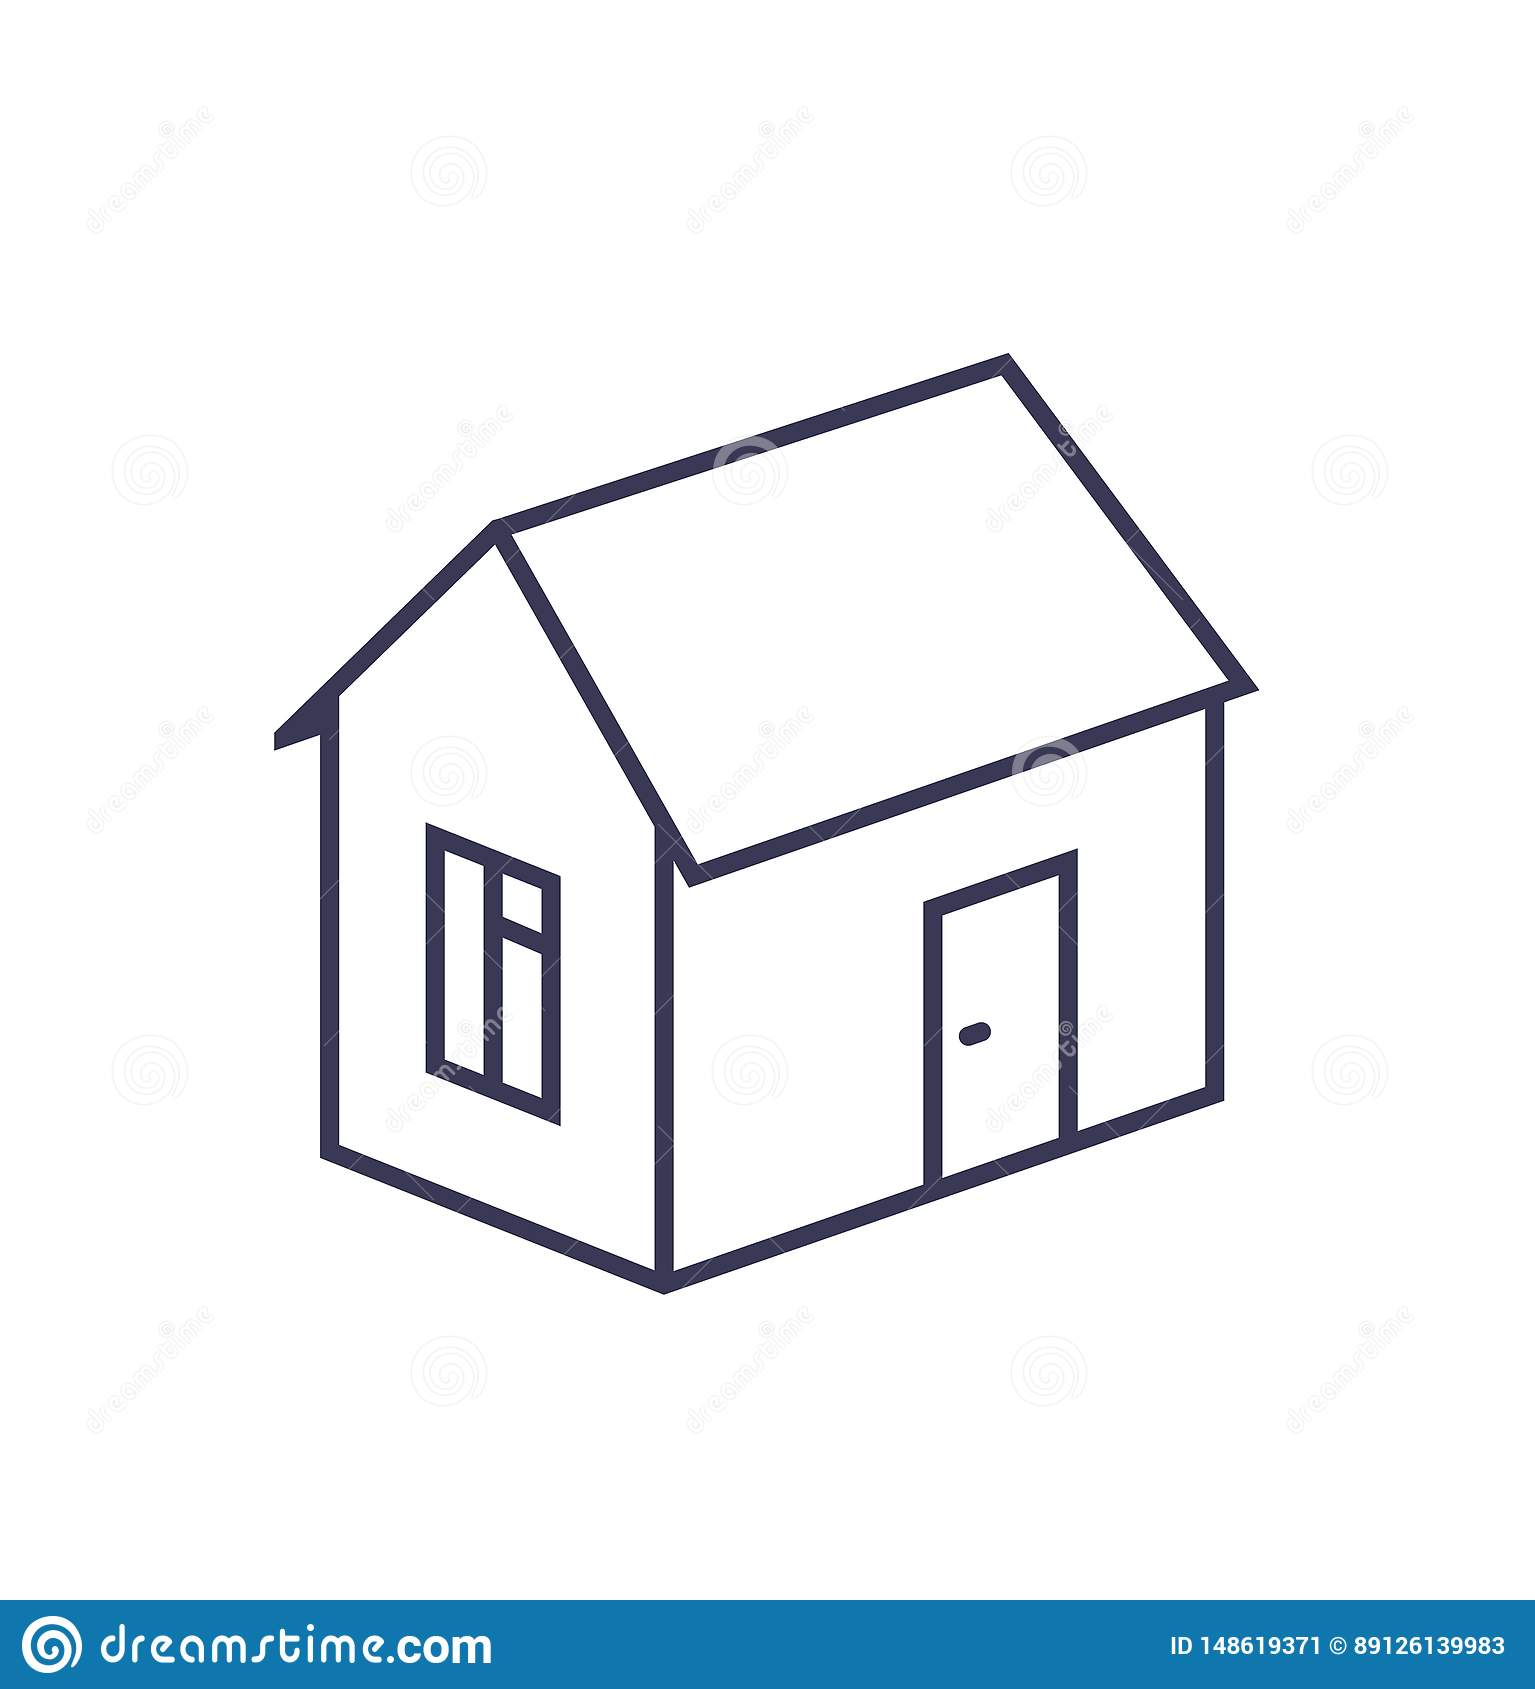 Outline image of a house on a white background.